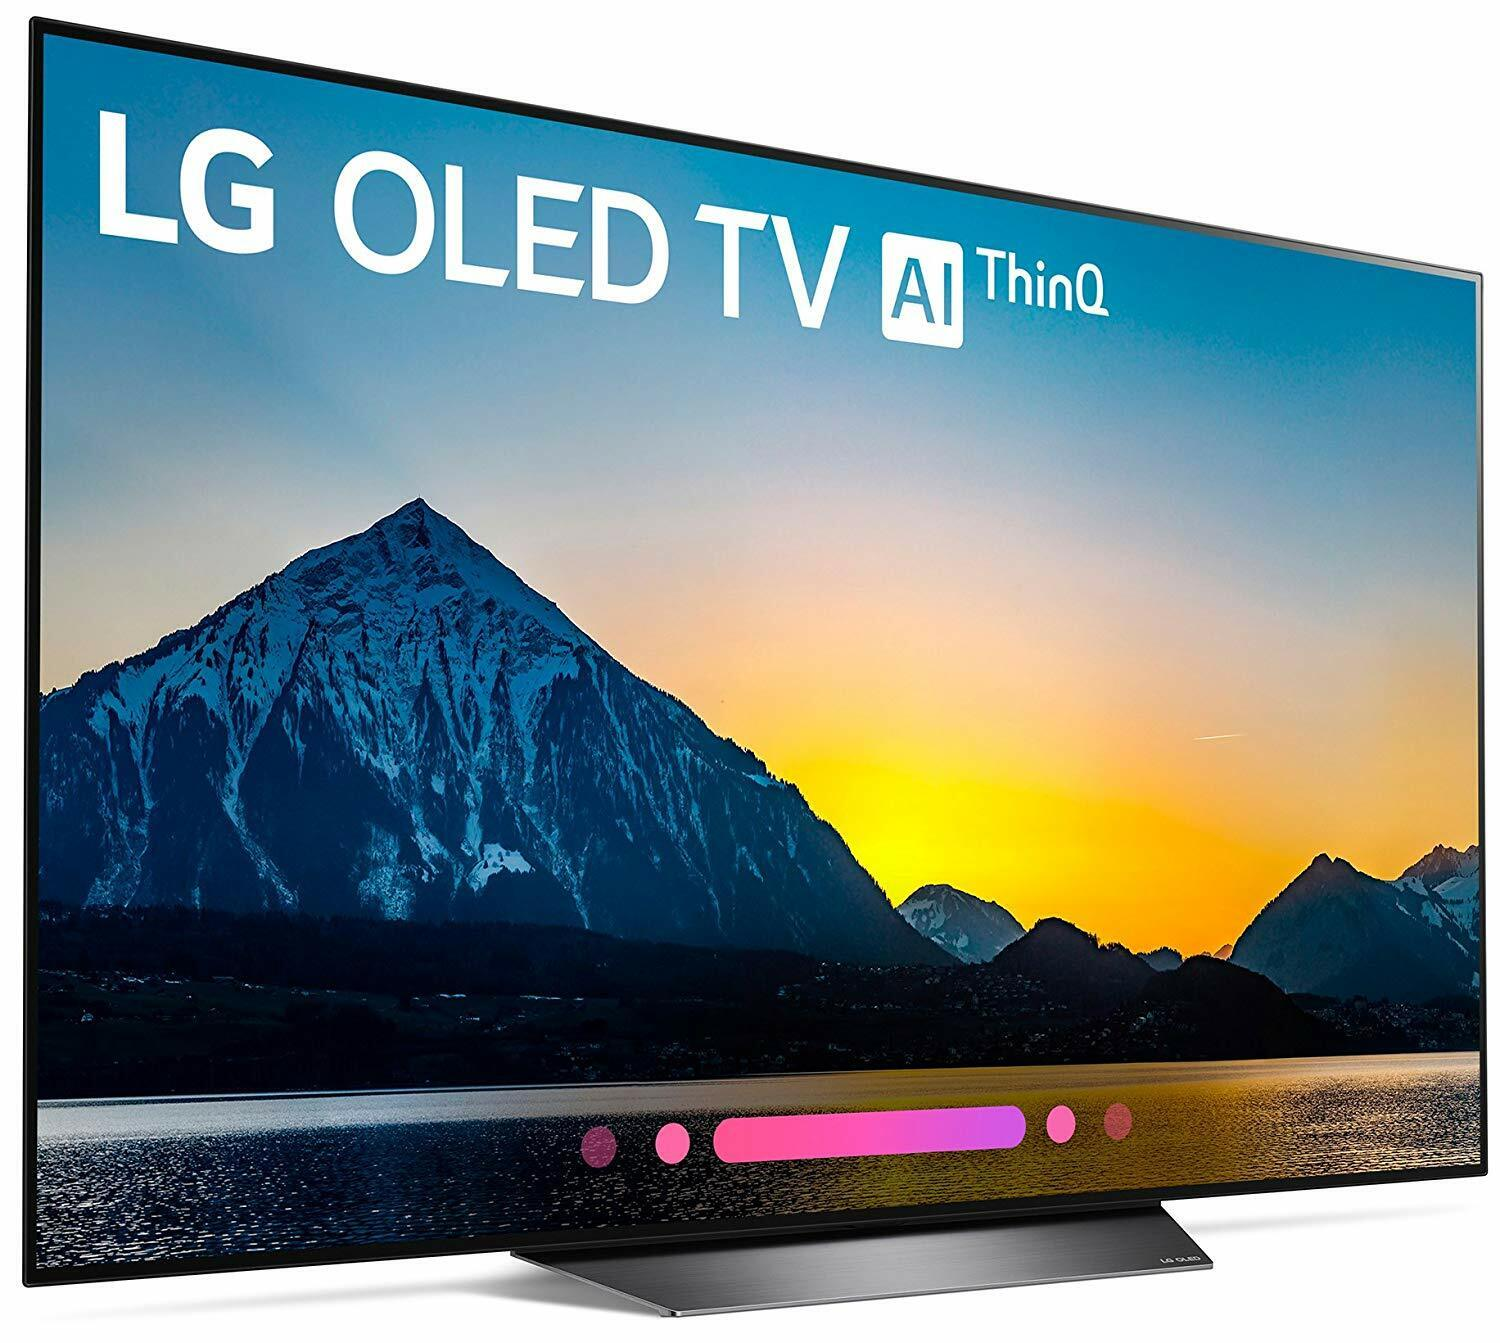 !! SEALED NEW LG Electronics OLED55B8PUA 55-Inch 4K Ultra HD